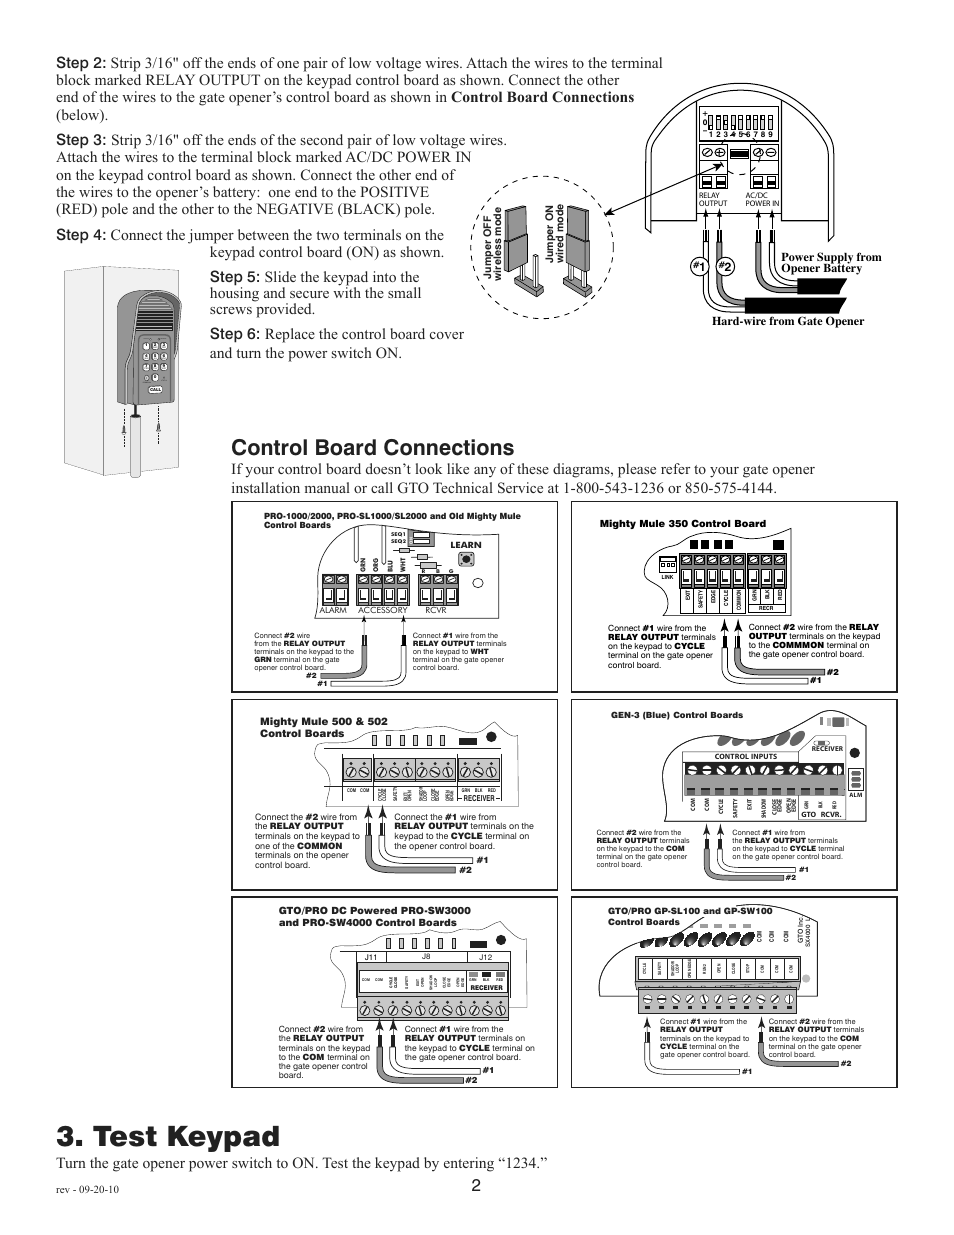 medium resolution of test keypad control board connections status program calling granted mighty mule fm136 user manual page 4 8